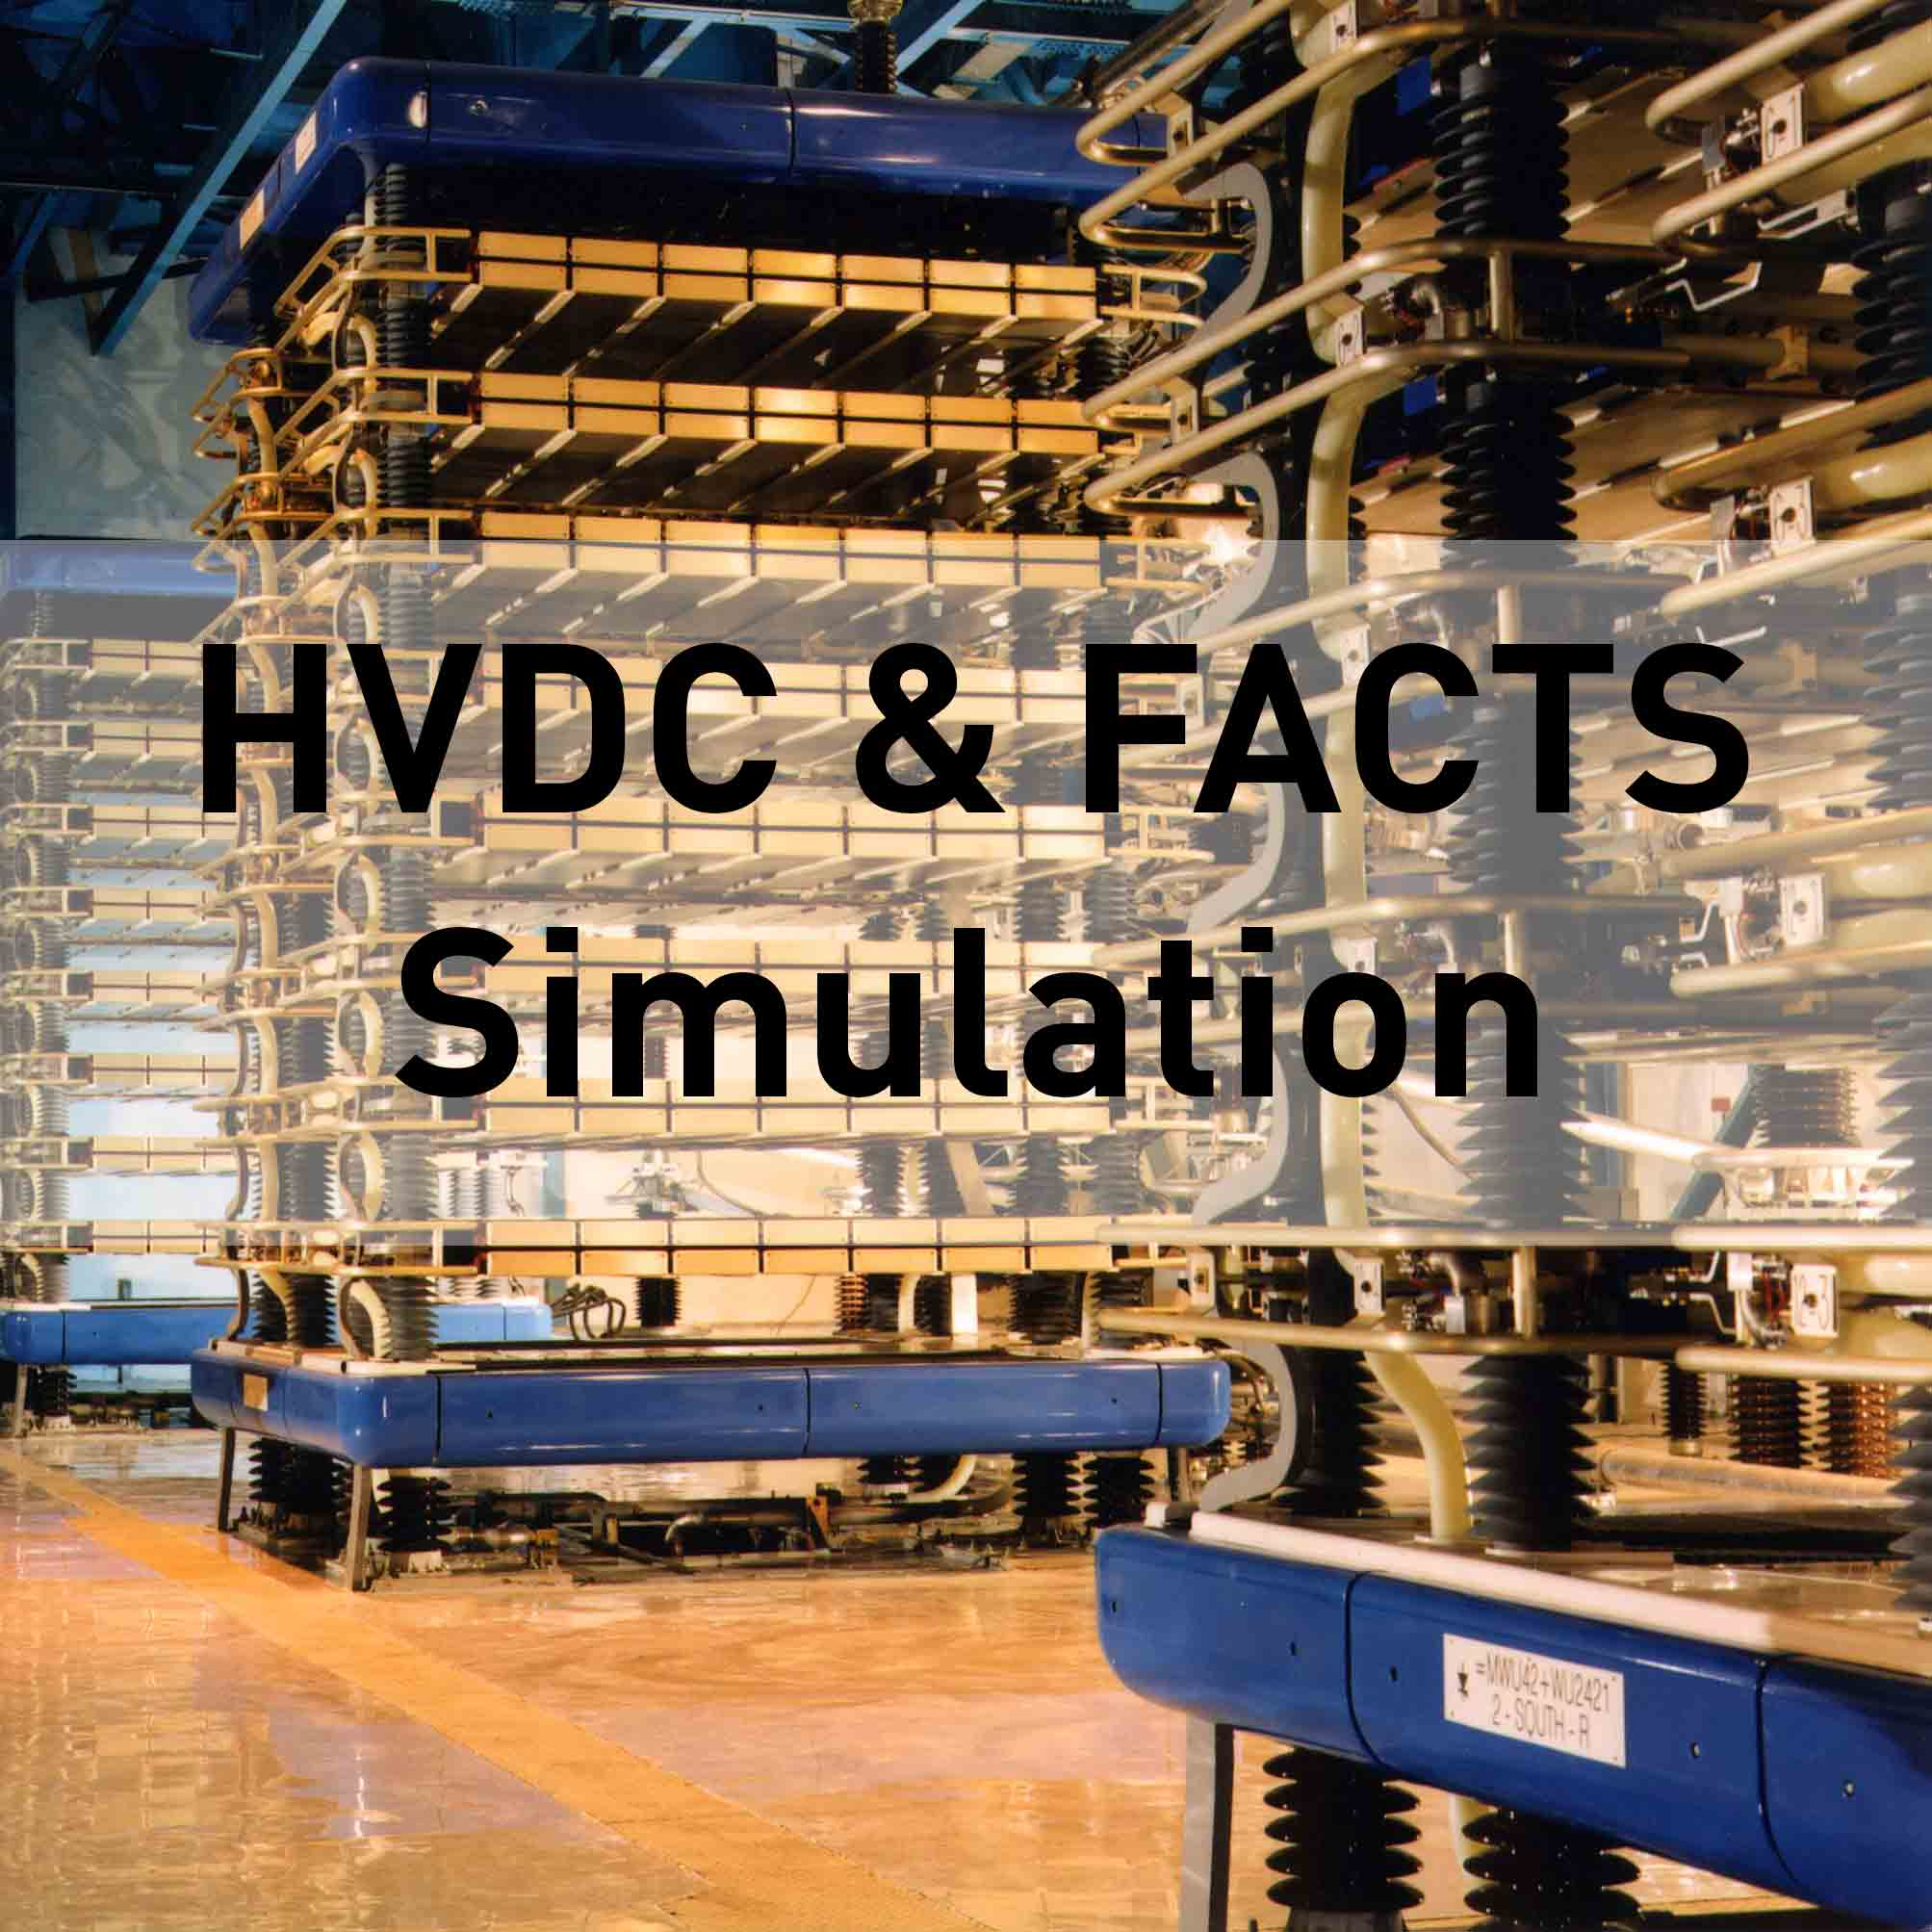 hvdc-facts simulation